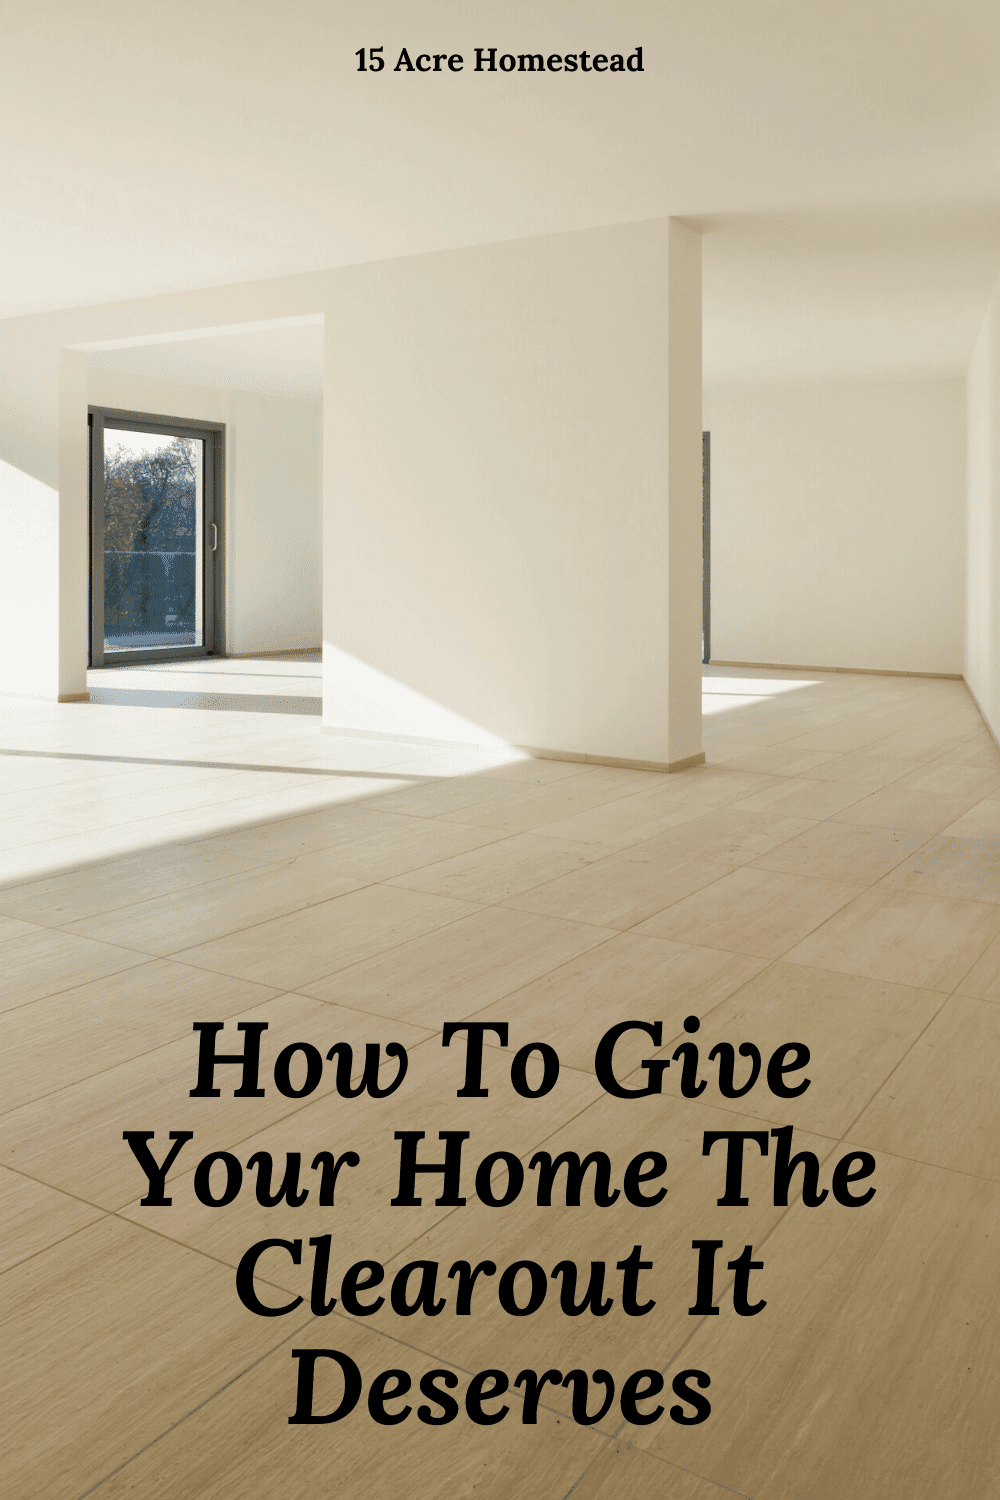 Give your home a good clearout using these tips and tricks.